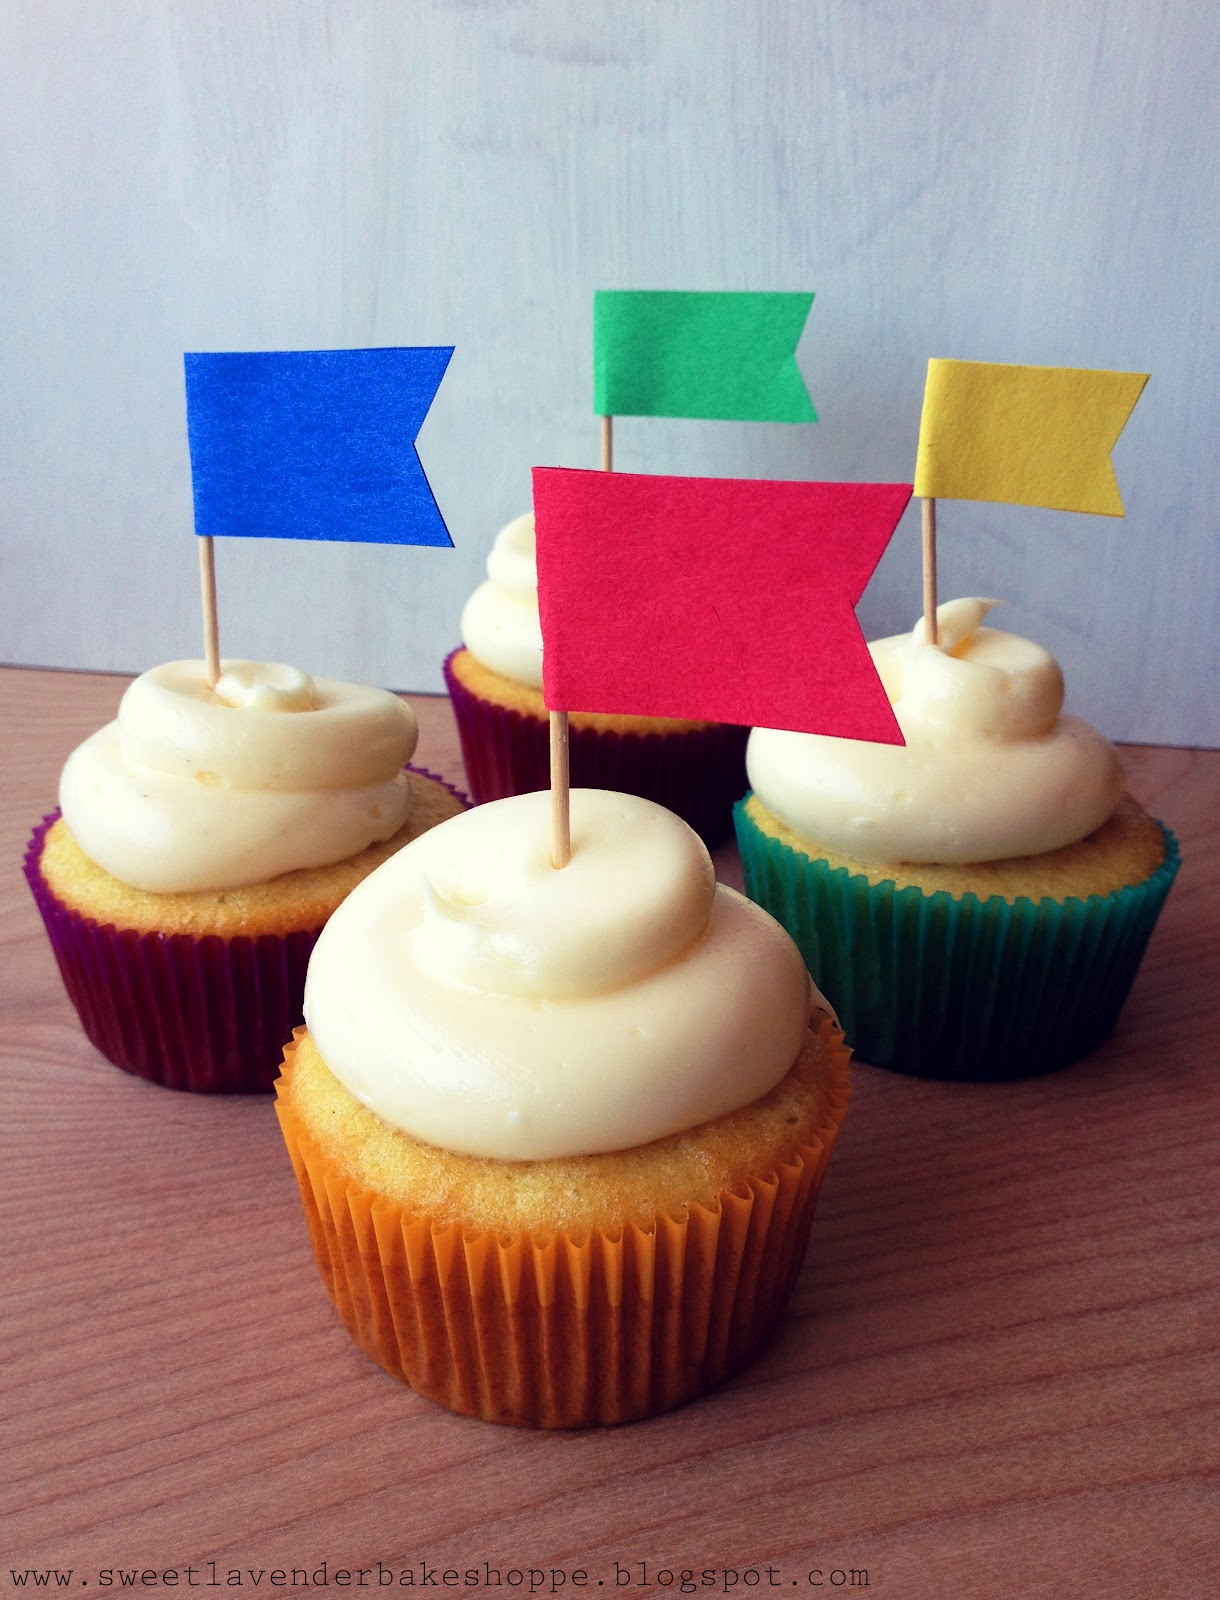 Sweet Lavender Bake Shoppe: diy flag cupcake toppers